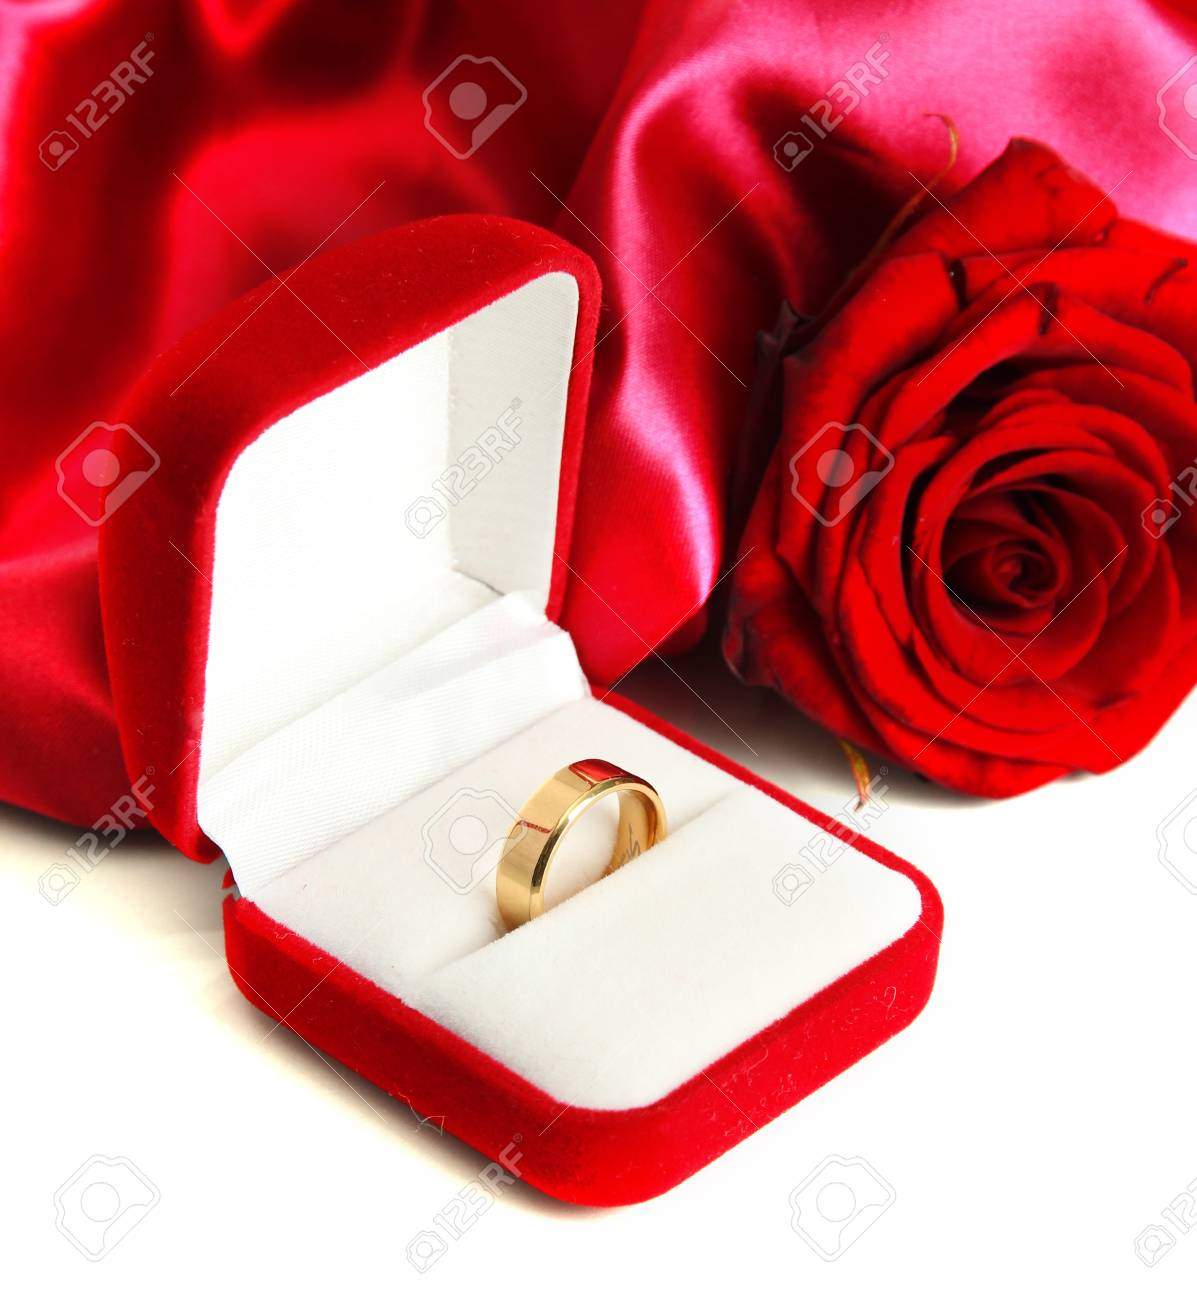 d082a8407 Beautiful box with wedding ring and rose on red silk background Stock Photo  - 17768954